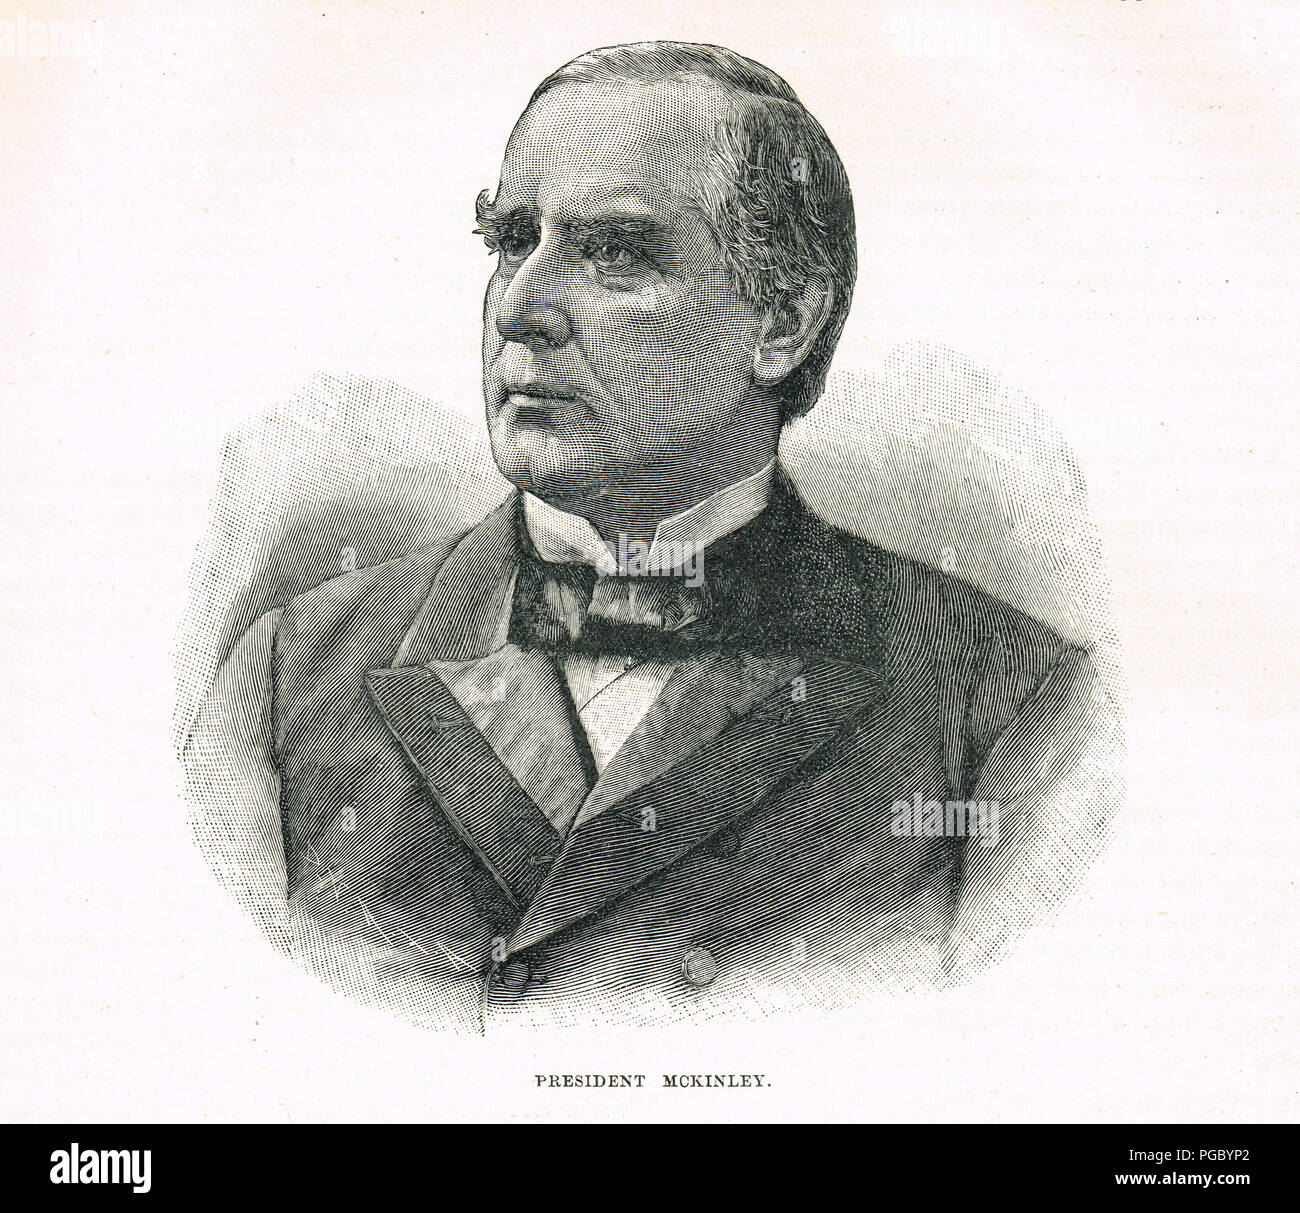 William McKinley, 25th President of the United States - Stock Image